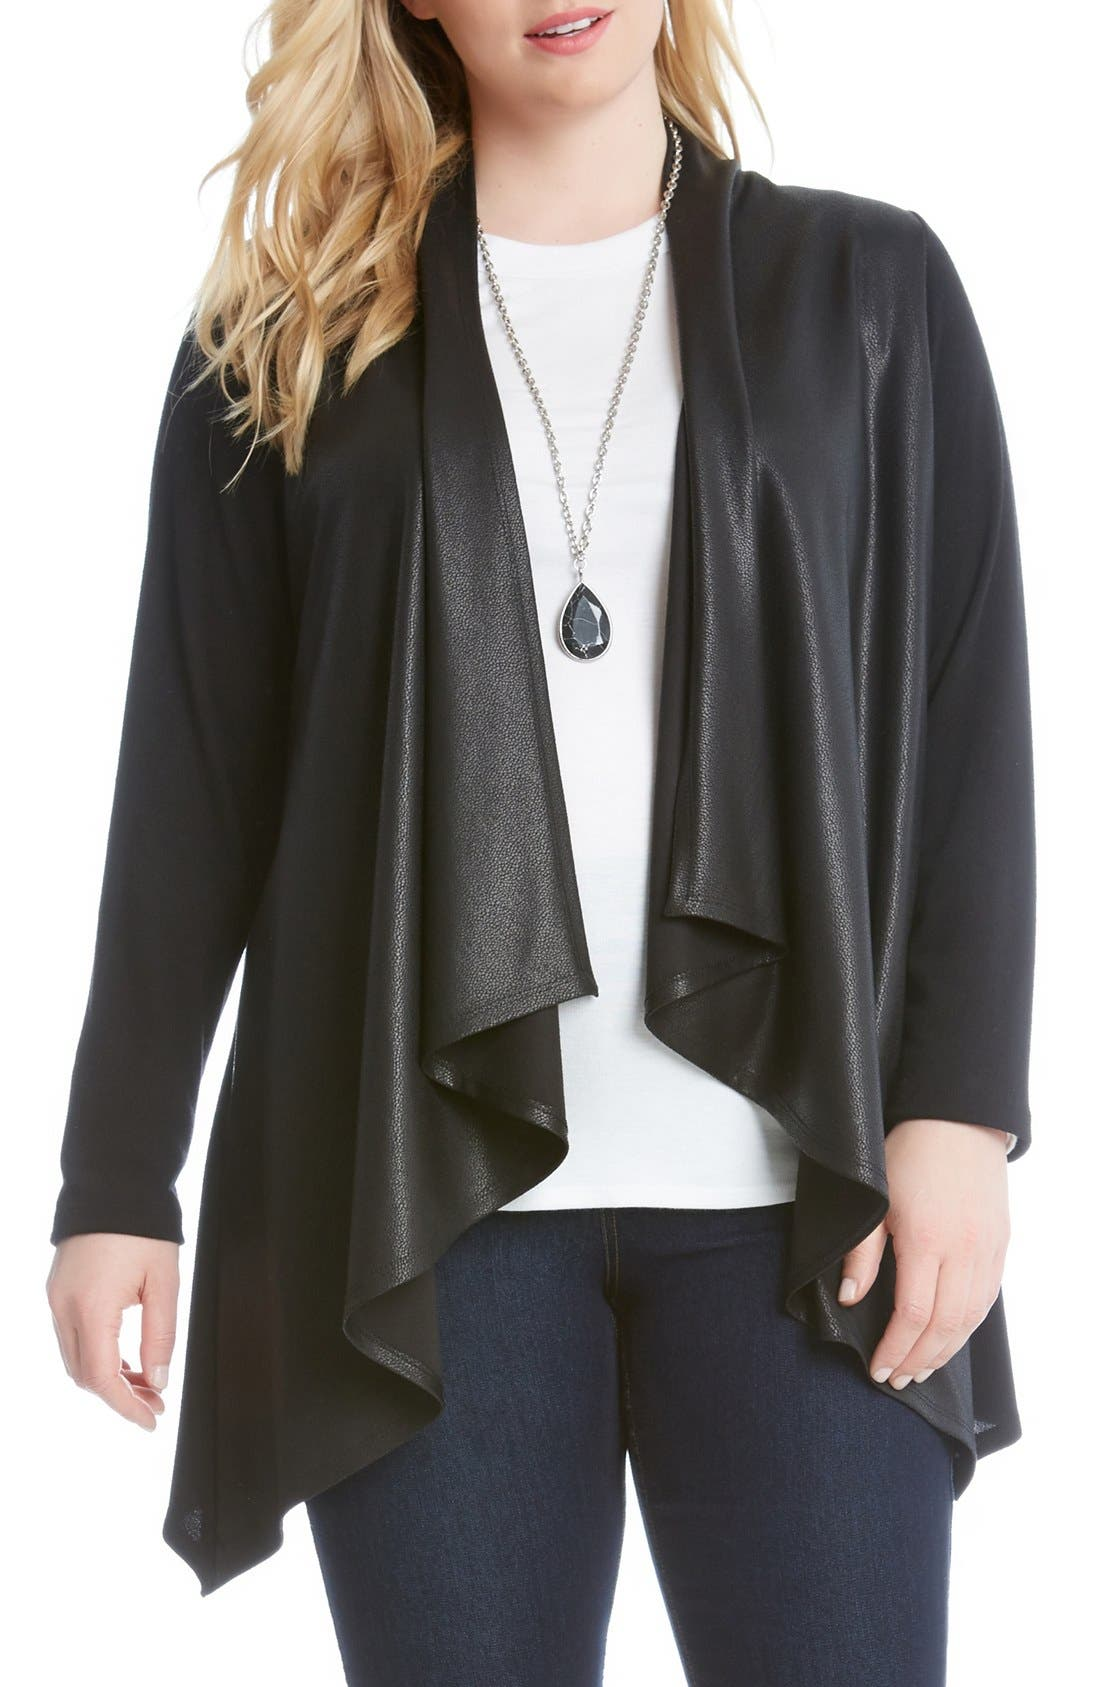 KAREN KANE Faux Leather Front Knit Jacket